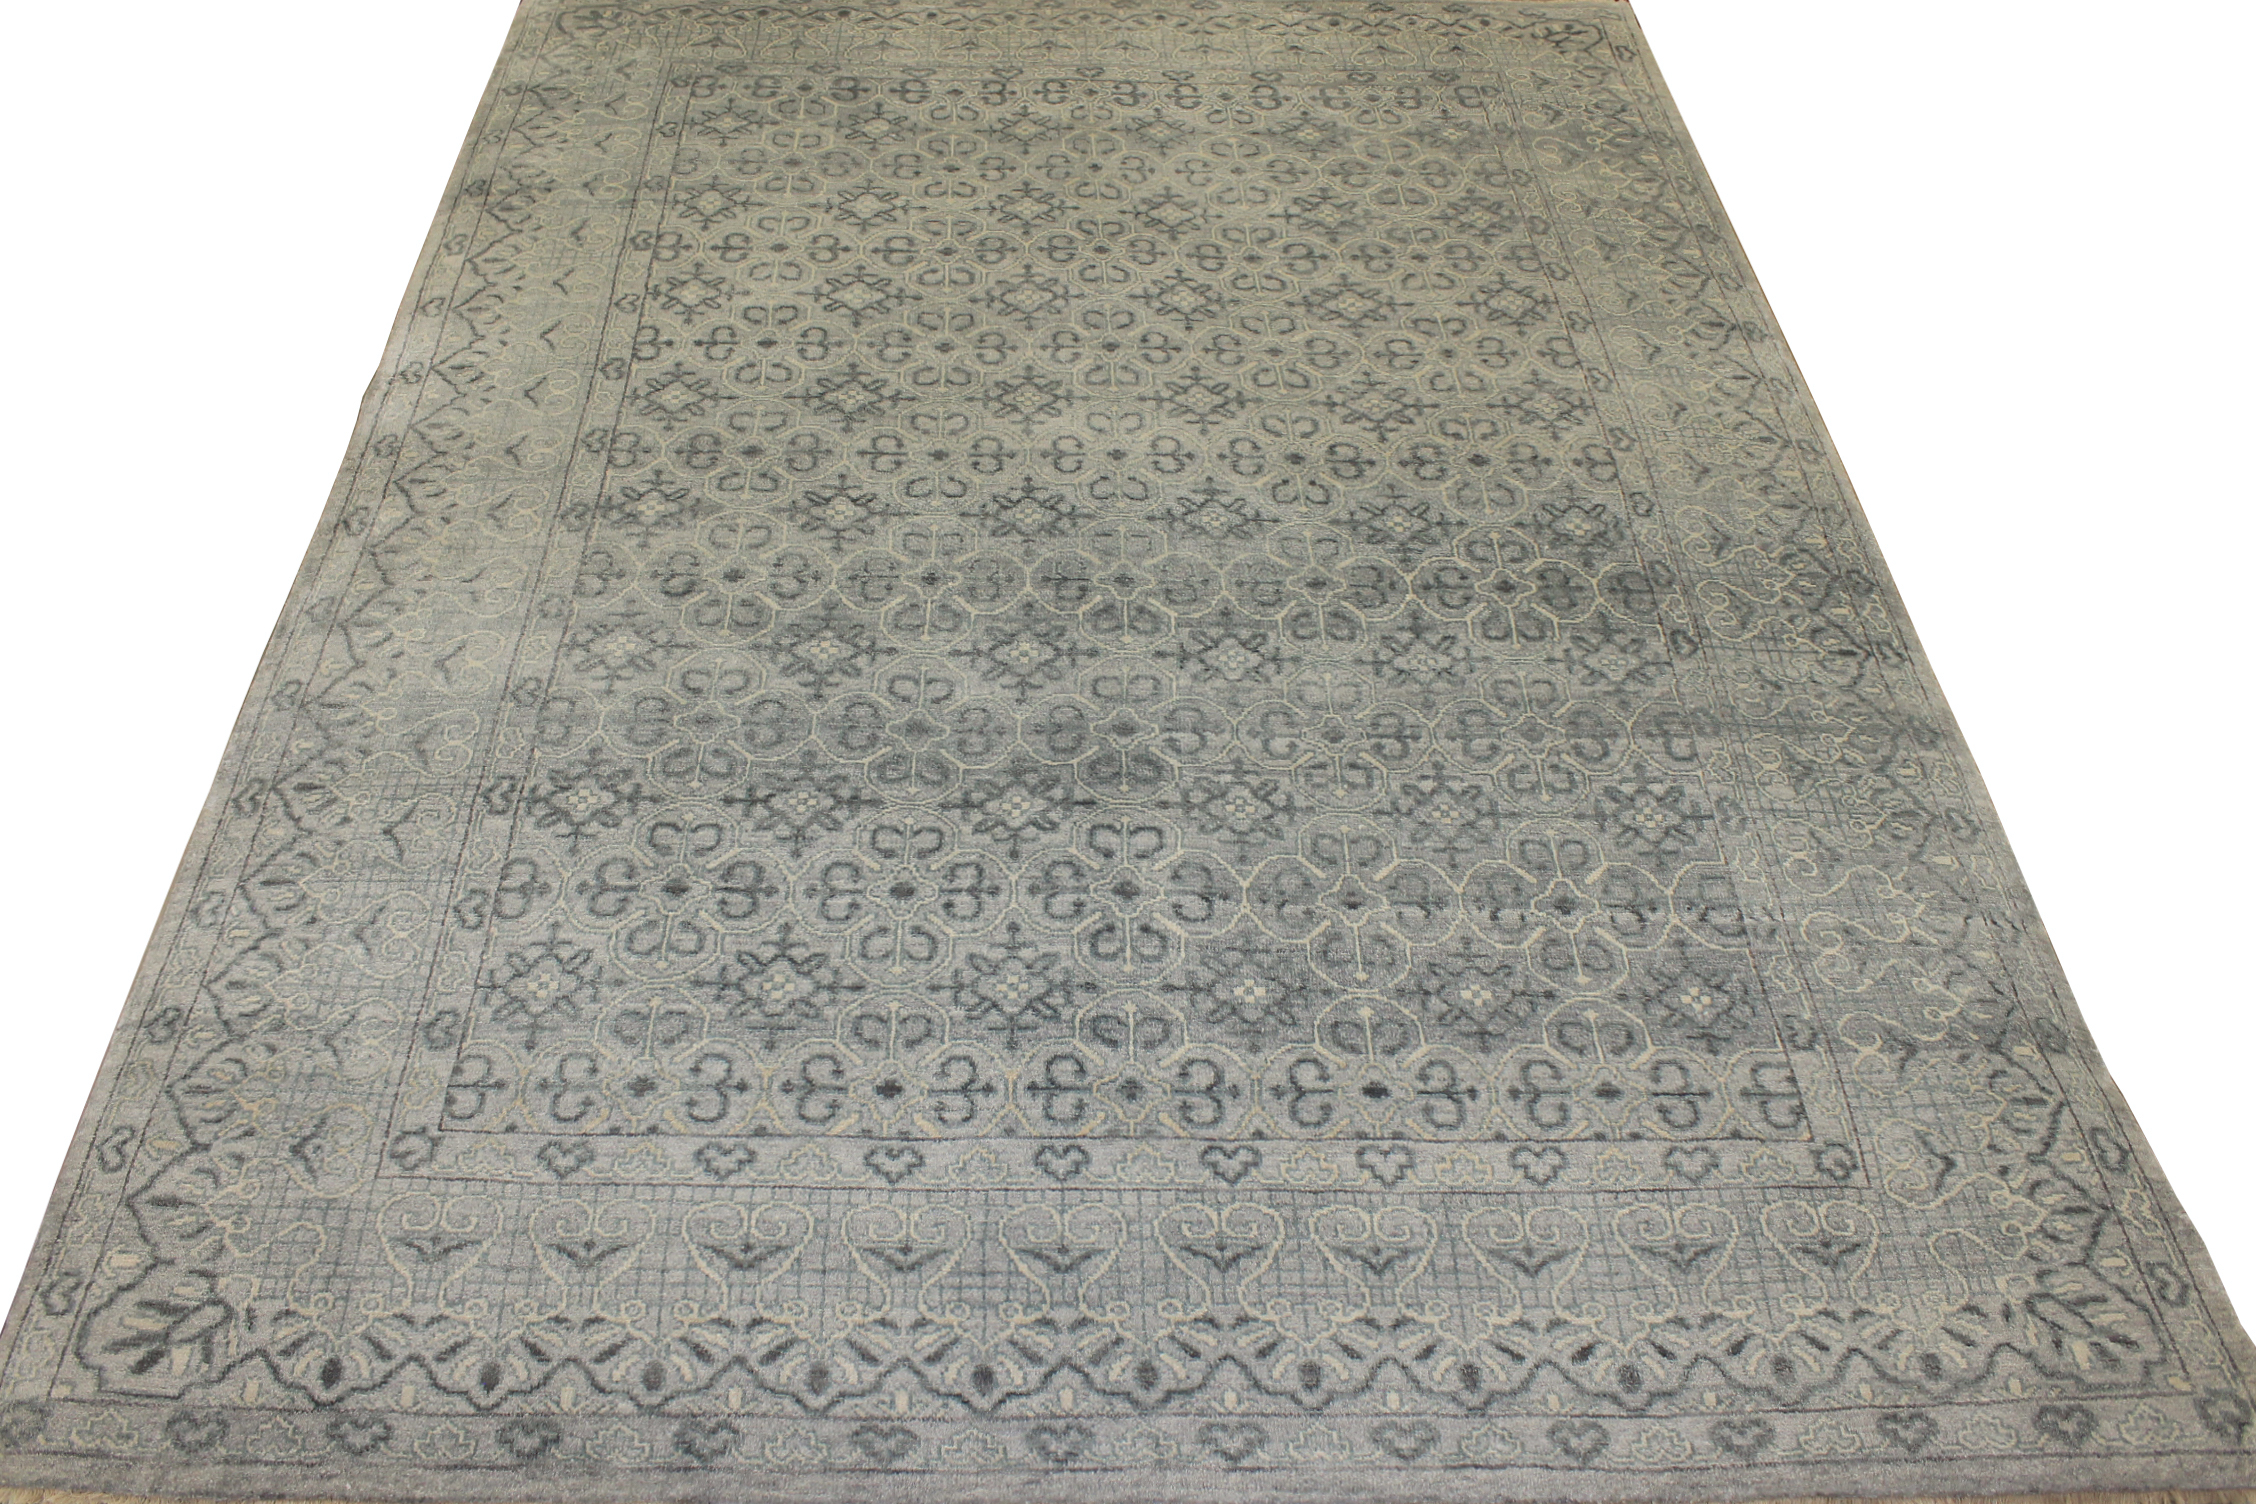 9x12 Contemporary Hand Knotted Wool Area Rug - MR17233